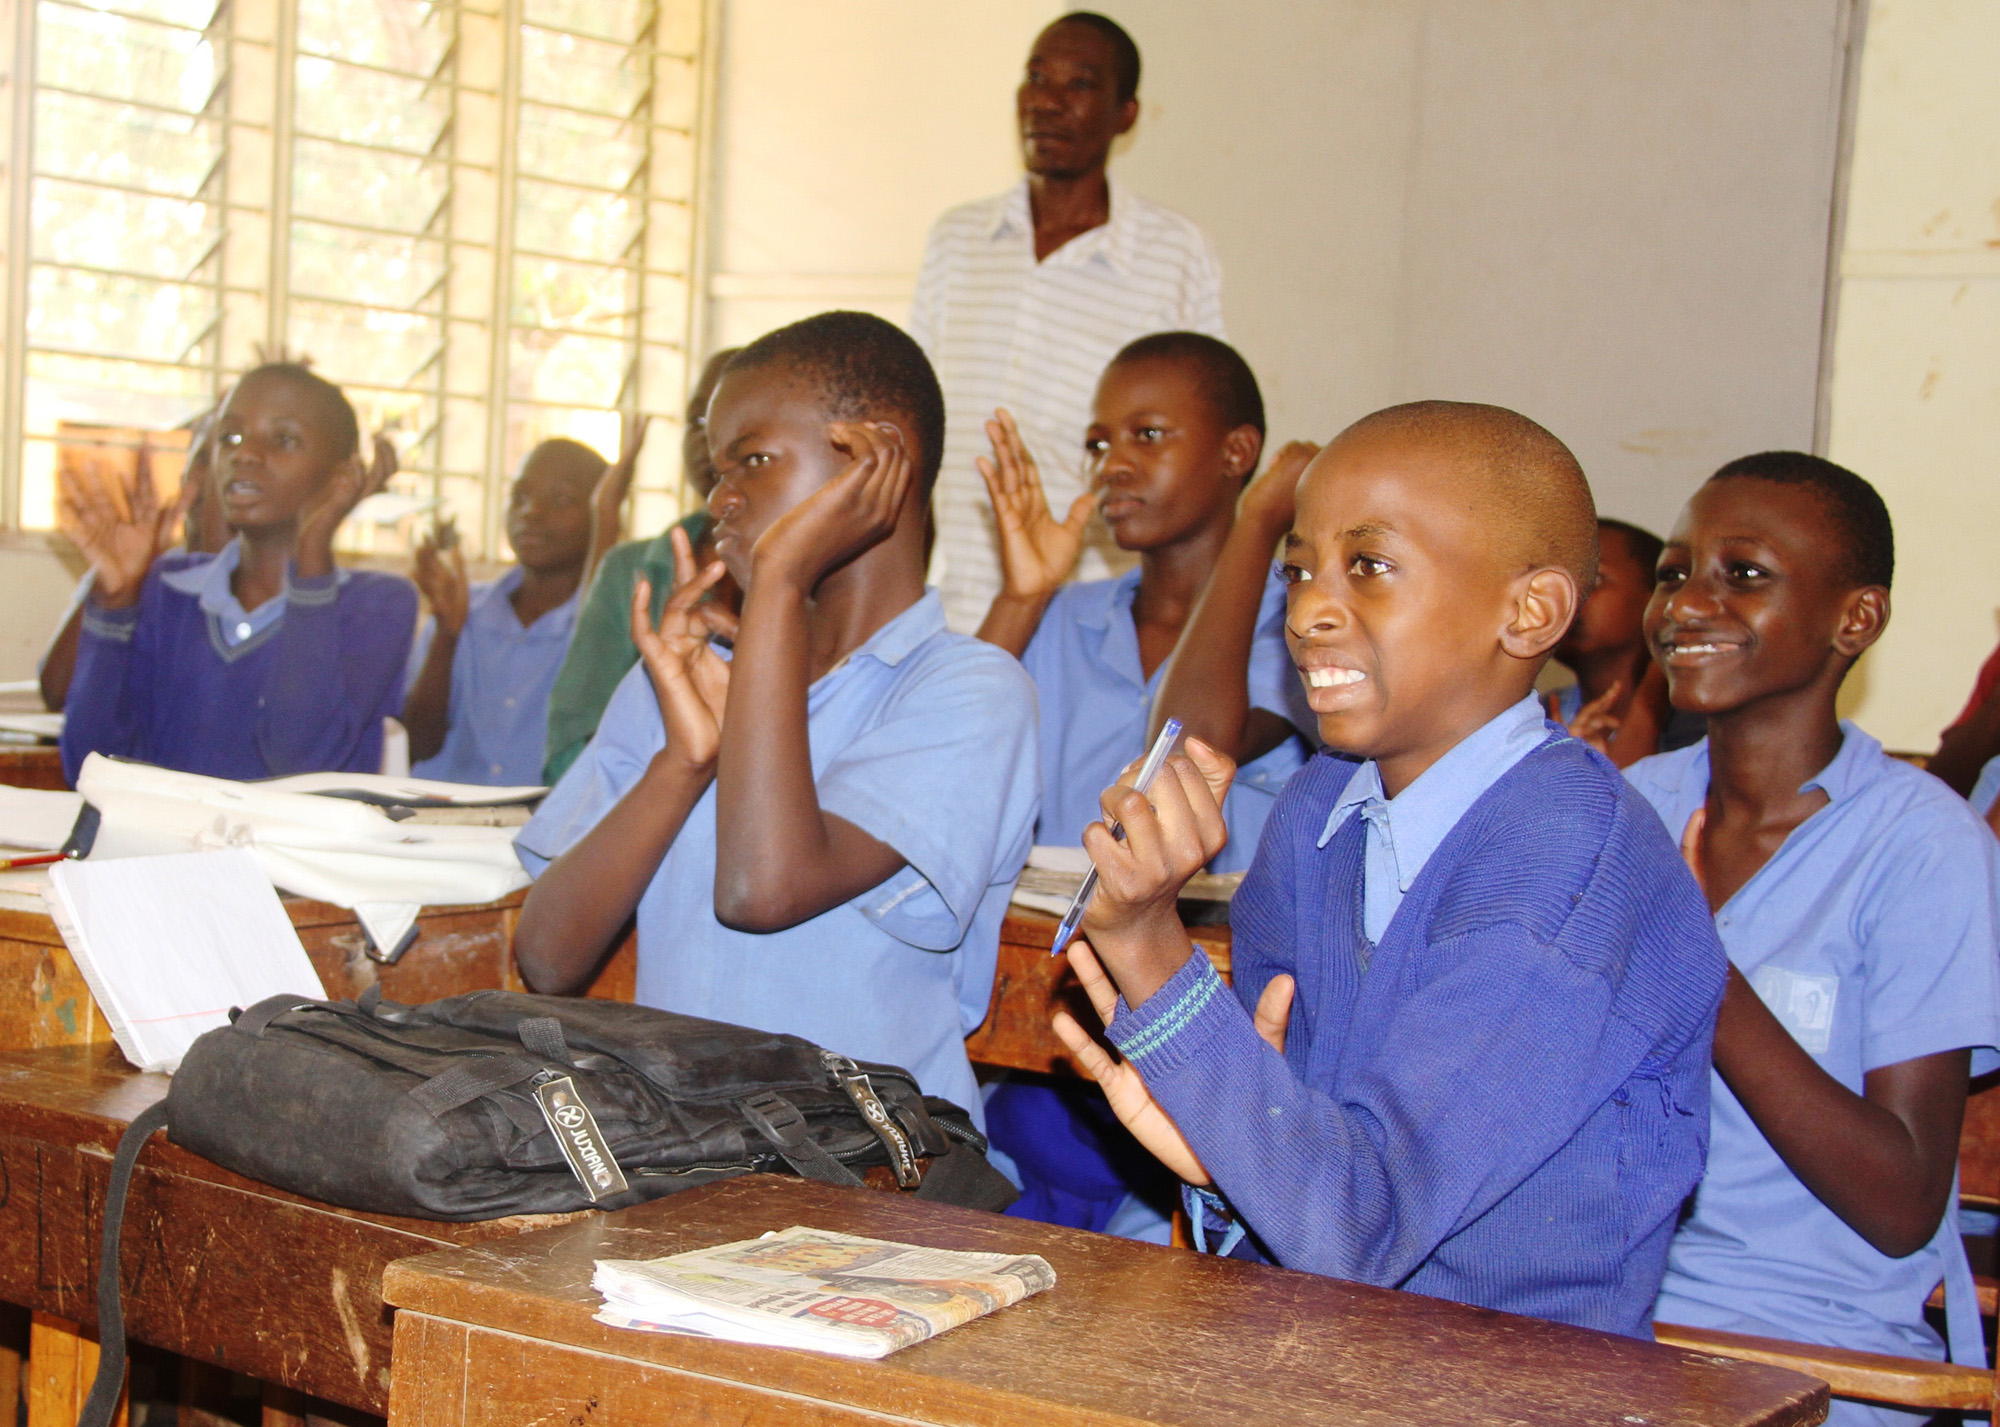 Deaf pupils attending a lesson at Uganda school for the deaf, Ntinda, Kampala. Activitists have pettitioned